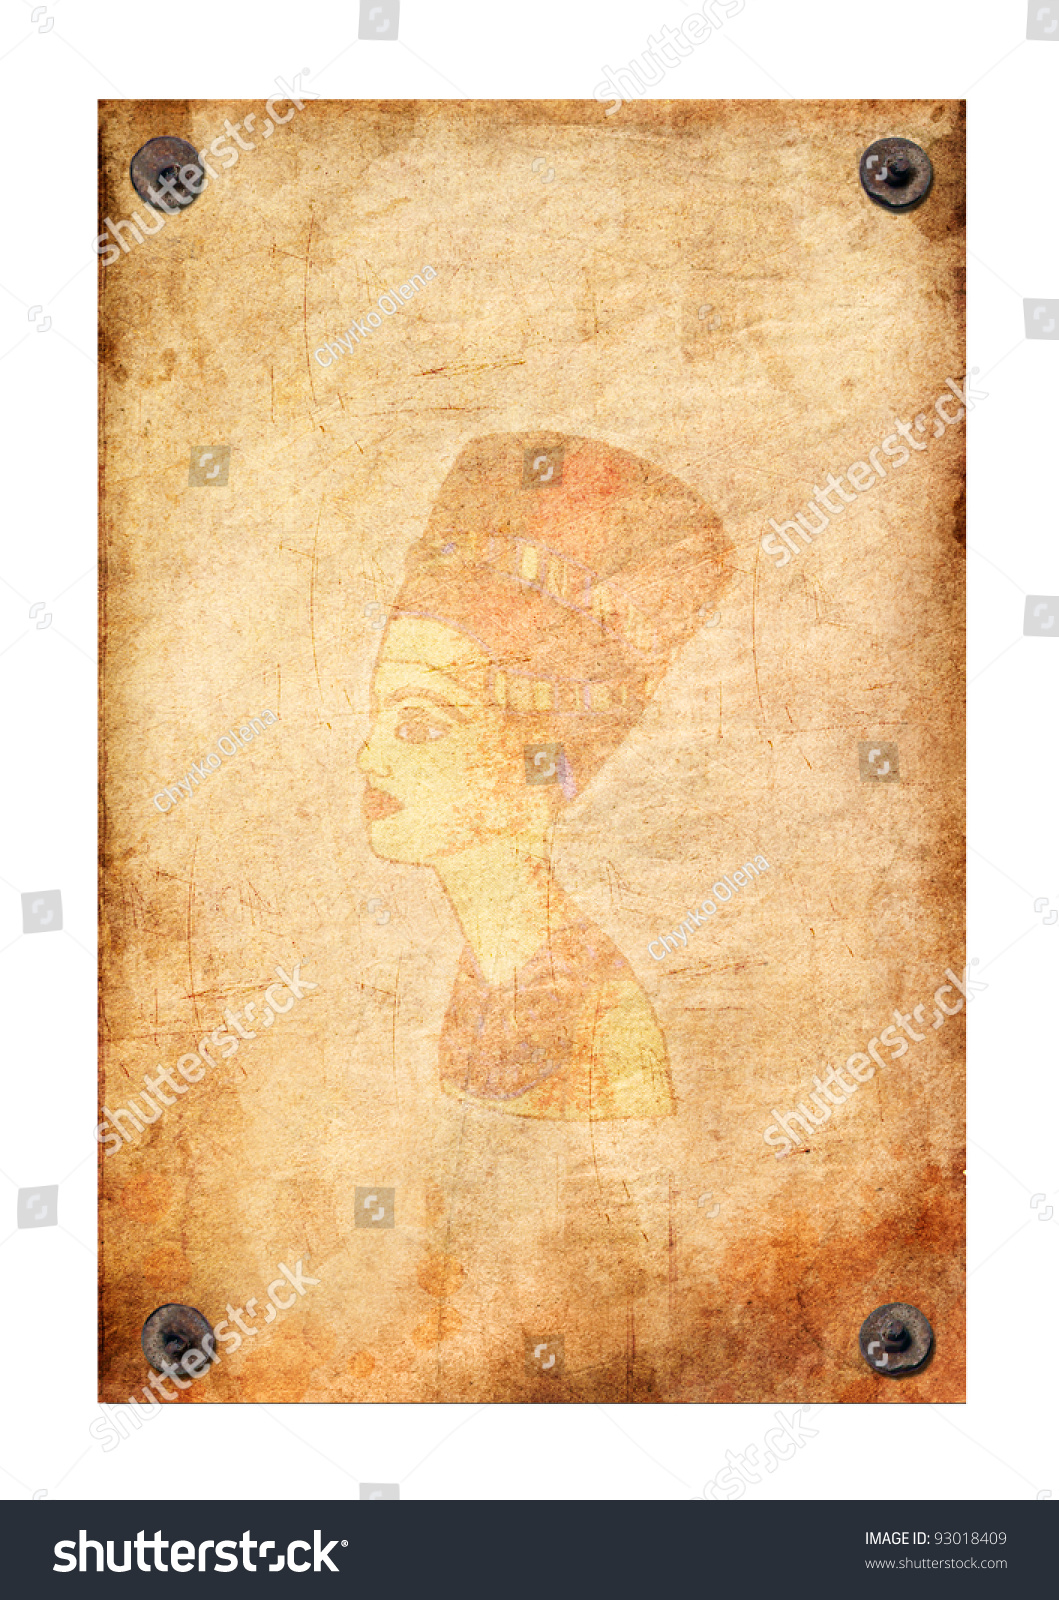 ... with queen Nefertiti pattern attached with nails on a white background